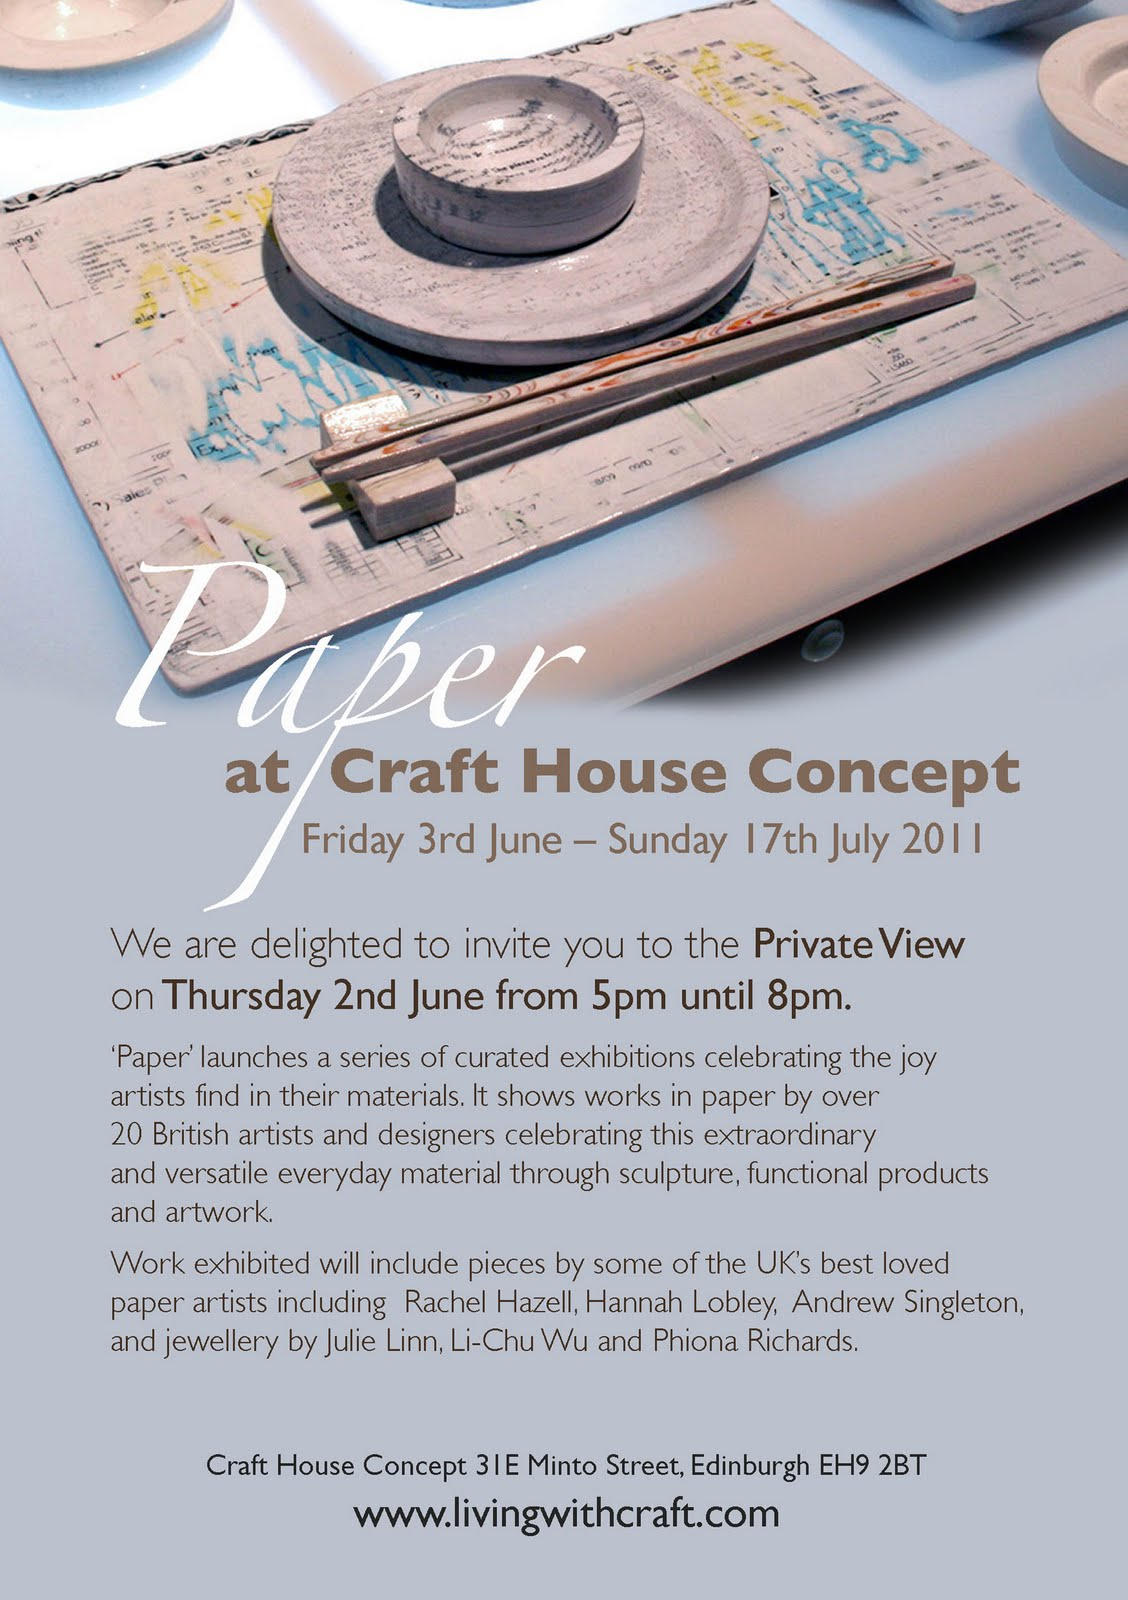 I Will Be Exhibiting Some Of My Paper Birds At Craft House Concept In  Edinburgh From The 2nd Of June Until The 17th Of July. The Birds Will Be  Exhibited And ...